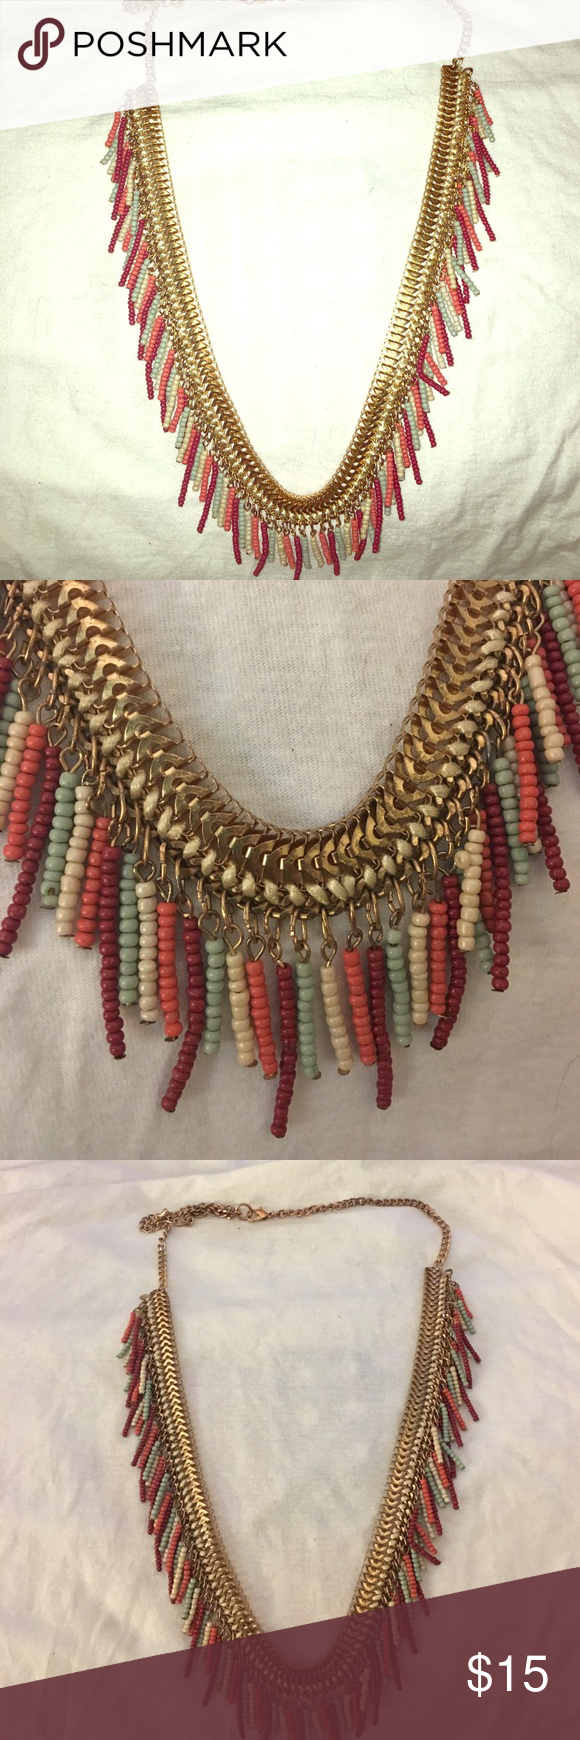 Maurice's colorful necklace Super cute Necklace ready for summer colors! Maurices Jewelry Necklaces